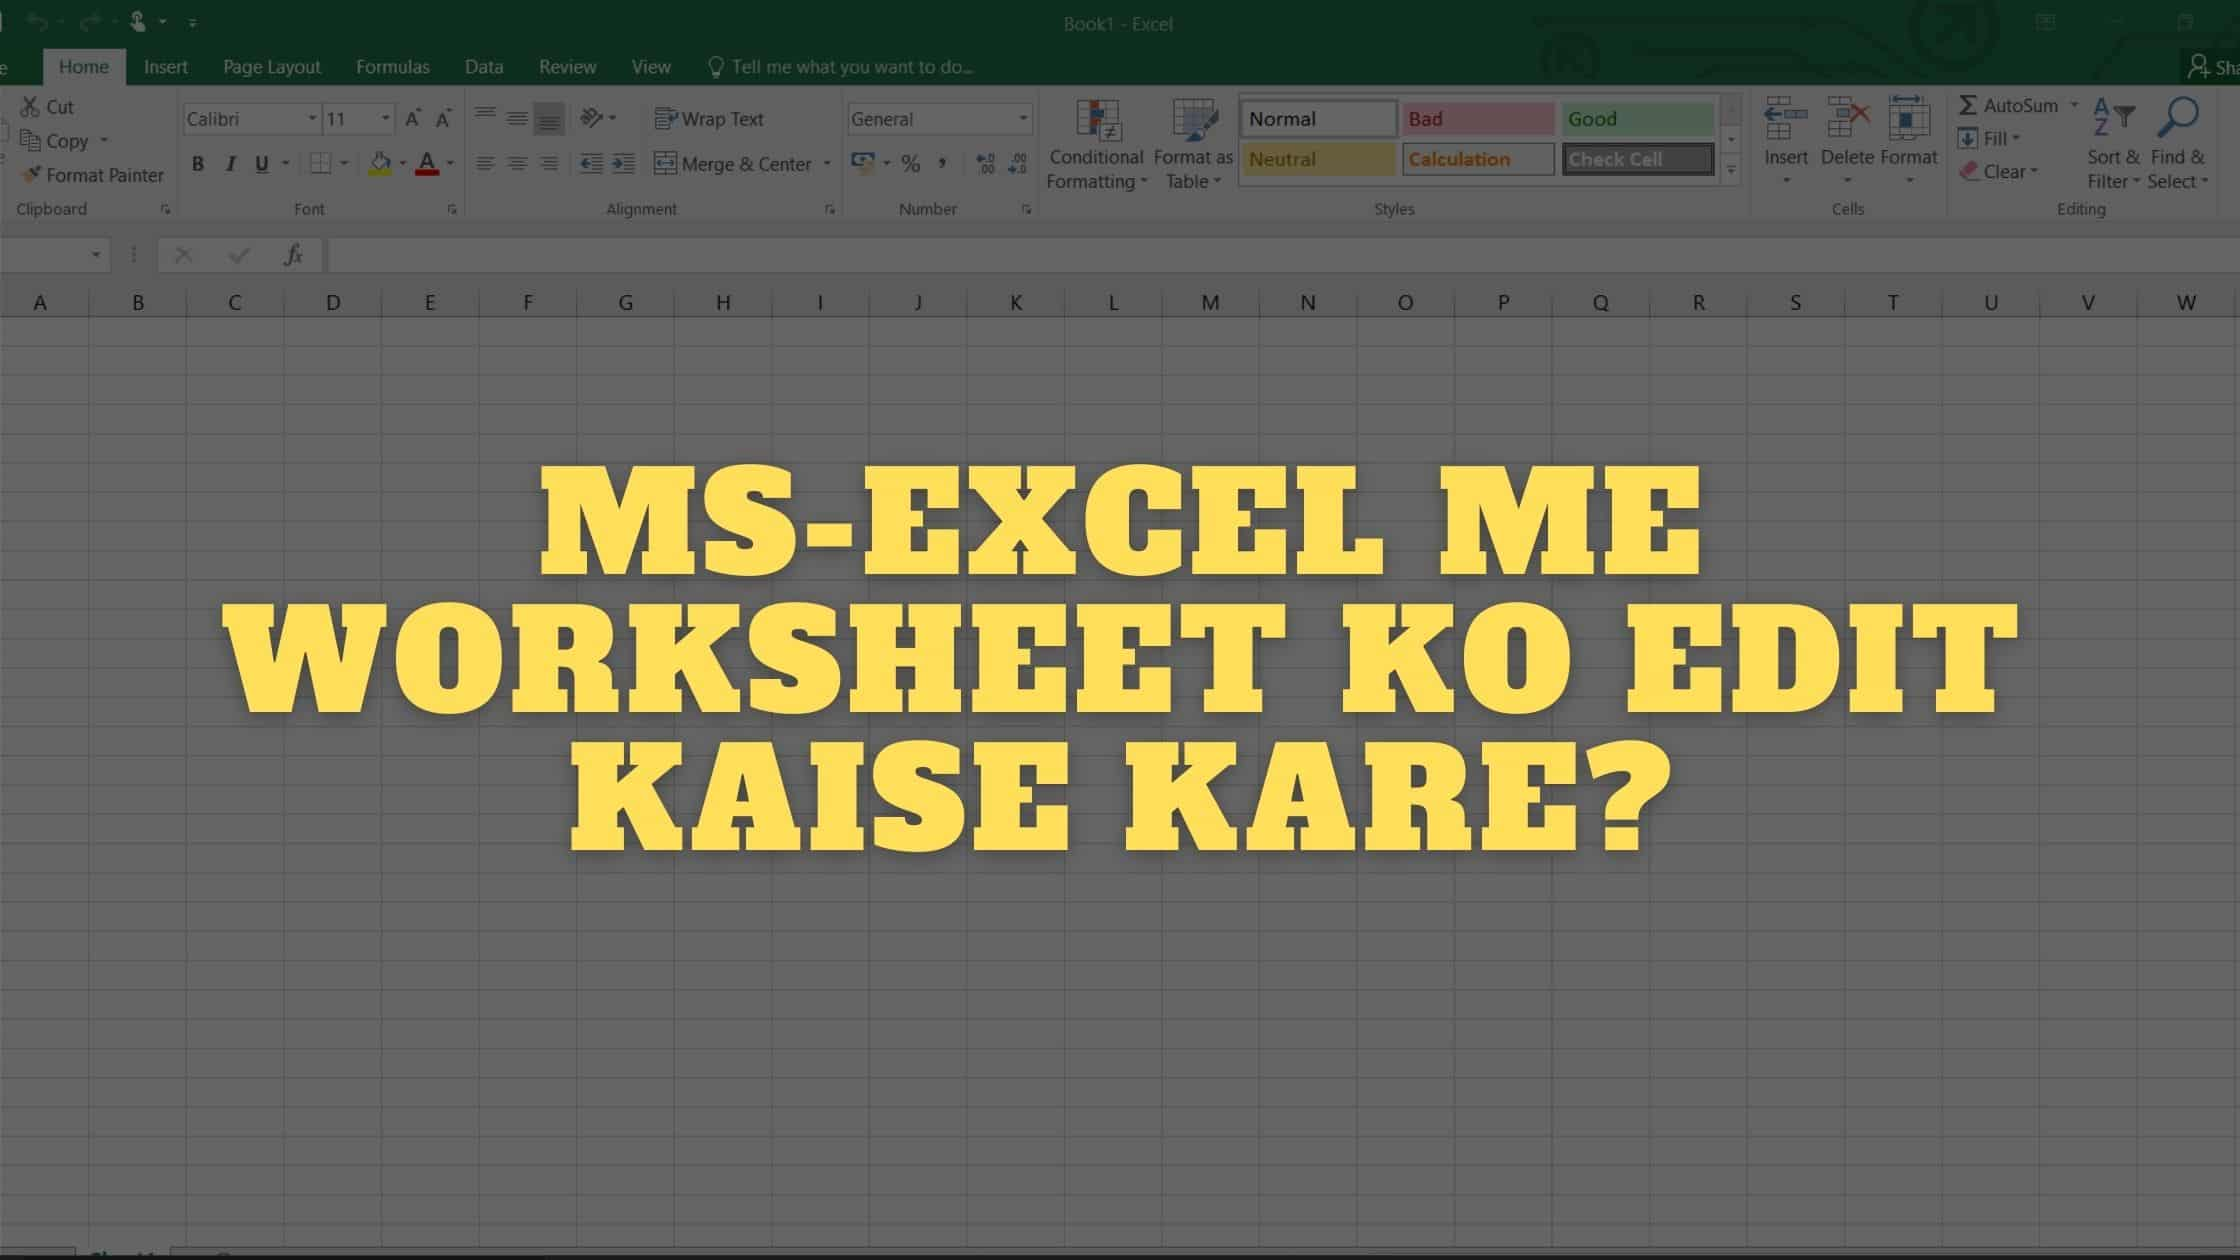 MS-EXCEL ME WORKSHEET KO EDIT KAISE KARE?